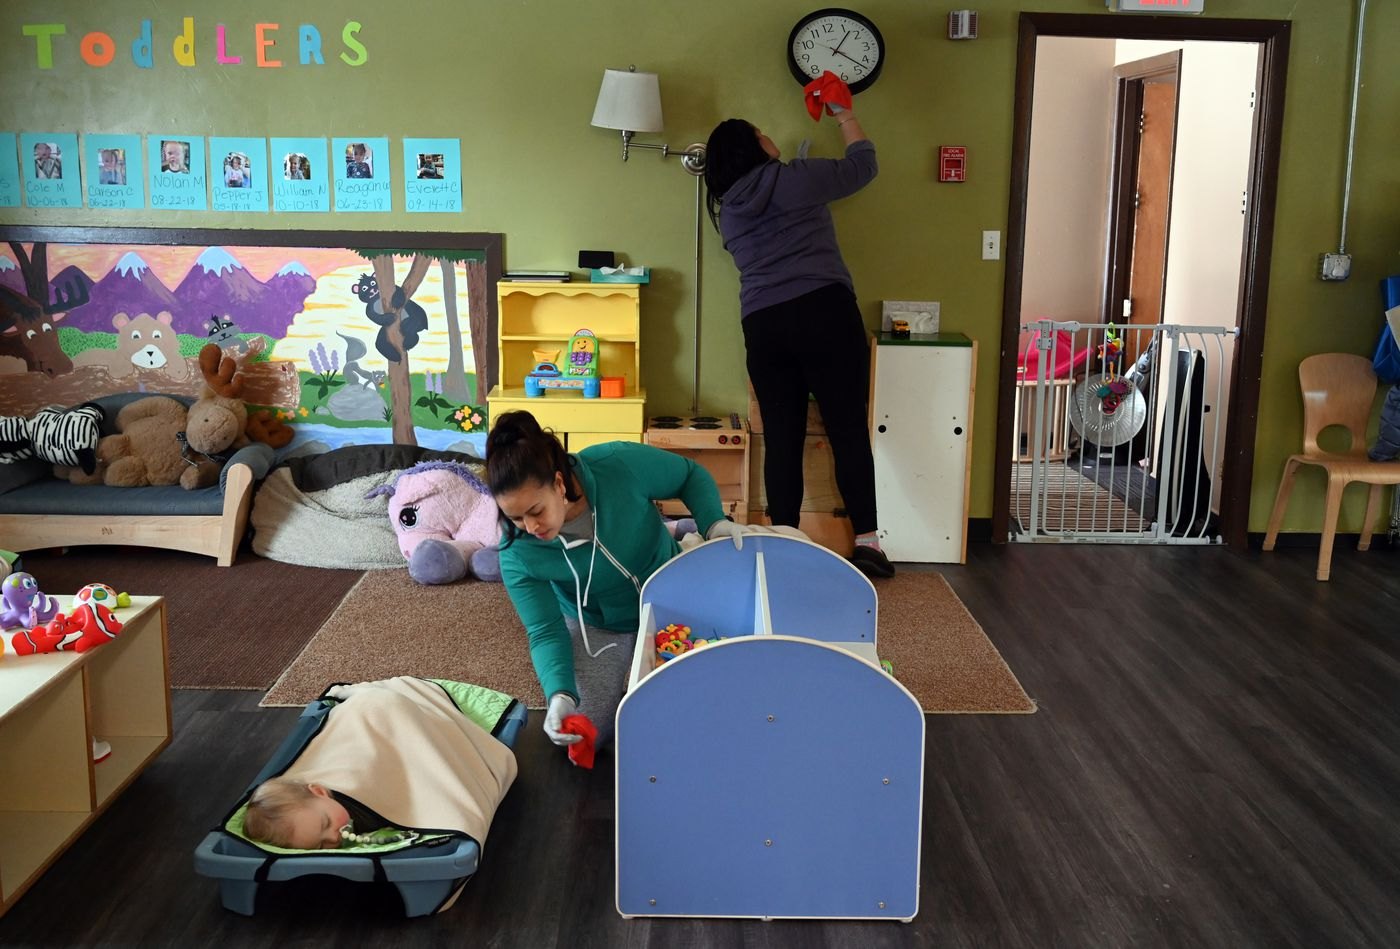 MARCH 17. Carmen DeJesus, center, and Mary Gonzalez, back wall, clean walls and furniture during nap time at Hillcrest Children's Center as a precaution against the spread of coronavirus. (Anne Raup / ADN)